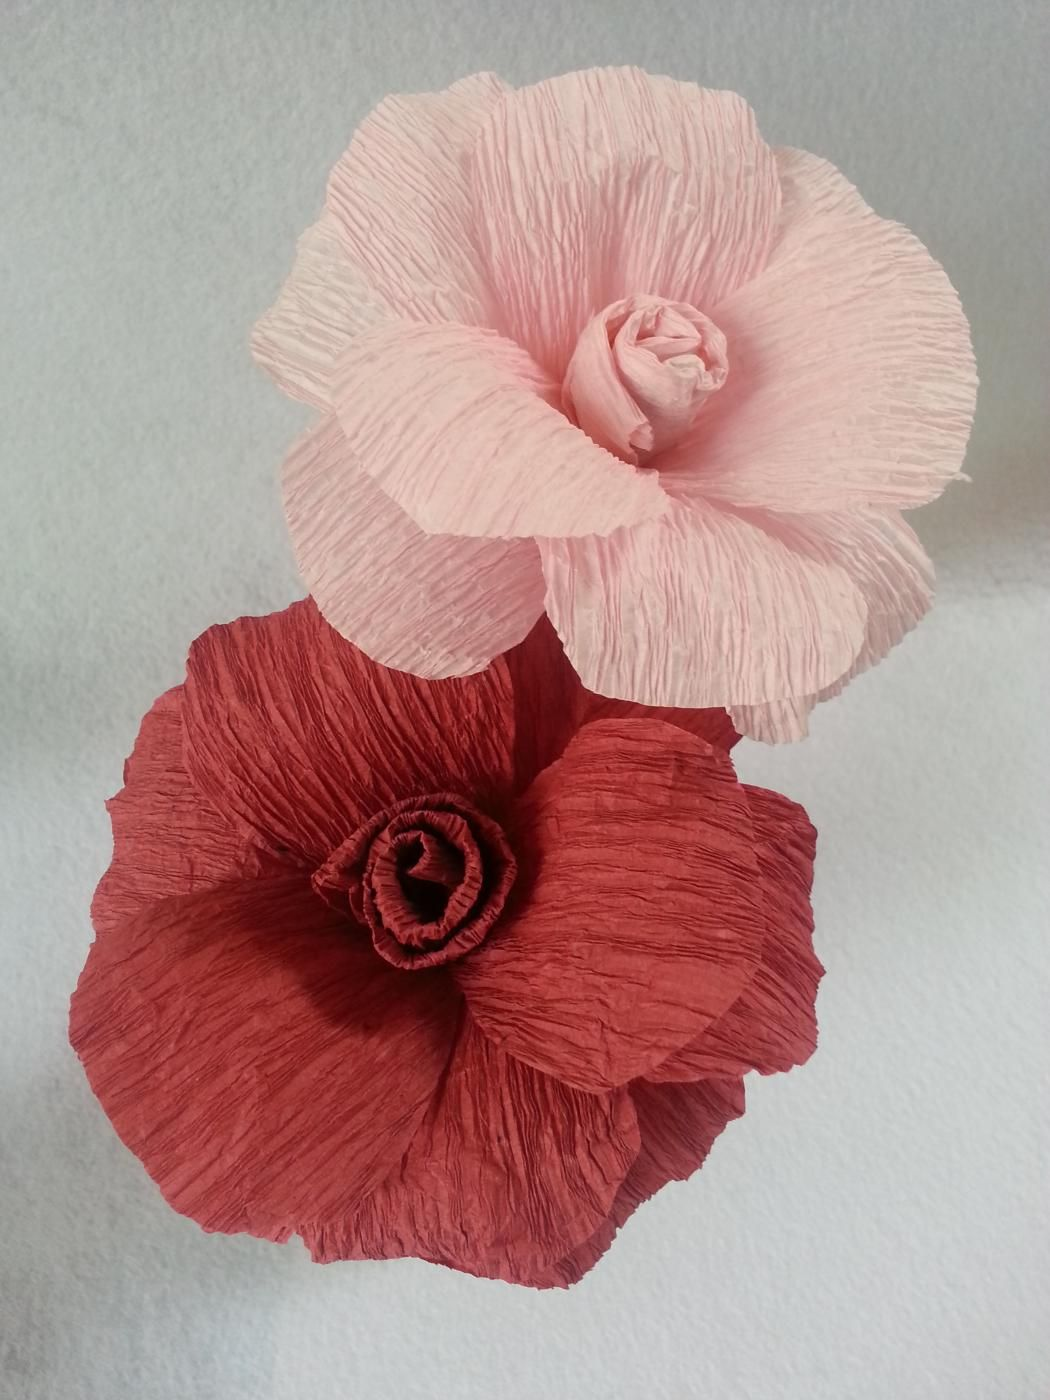 How To Make Crepe Paper Flowers Createsie Paper Flowers Craft Paper Flowers Paper Flowers Diy